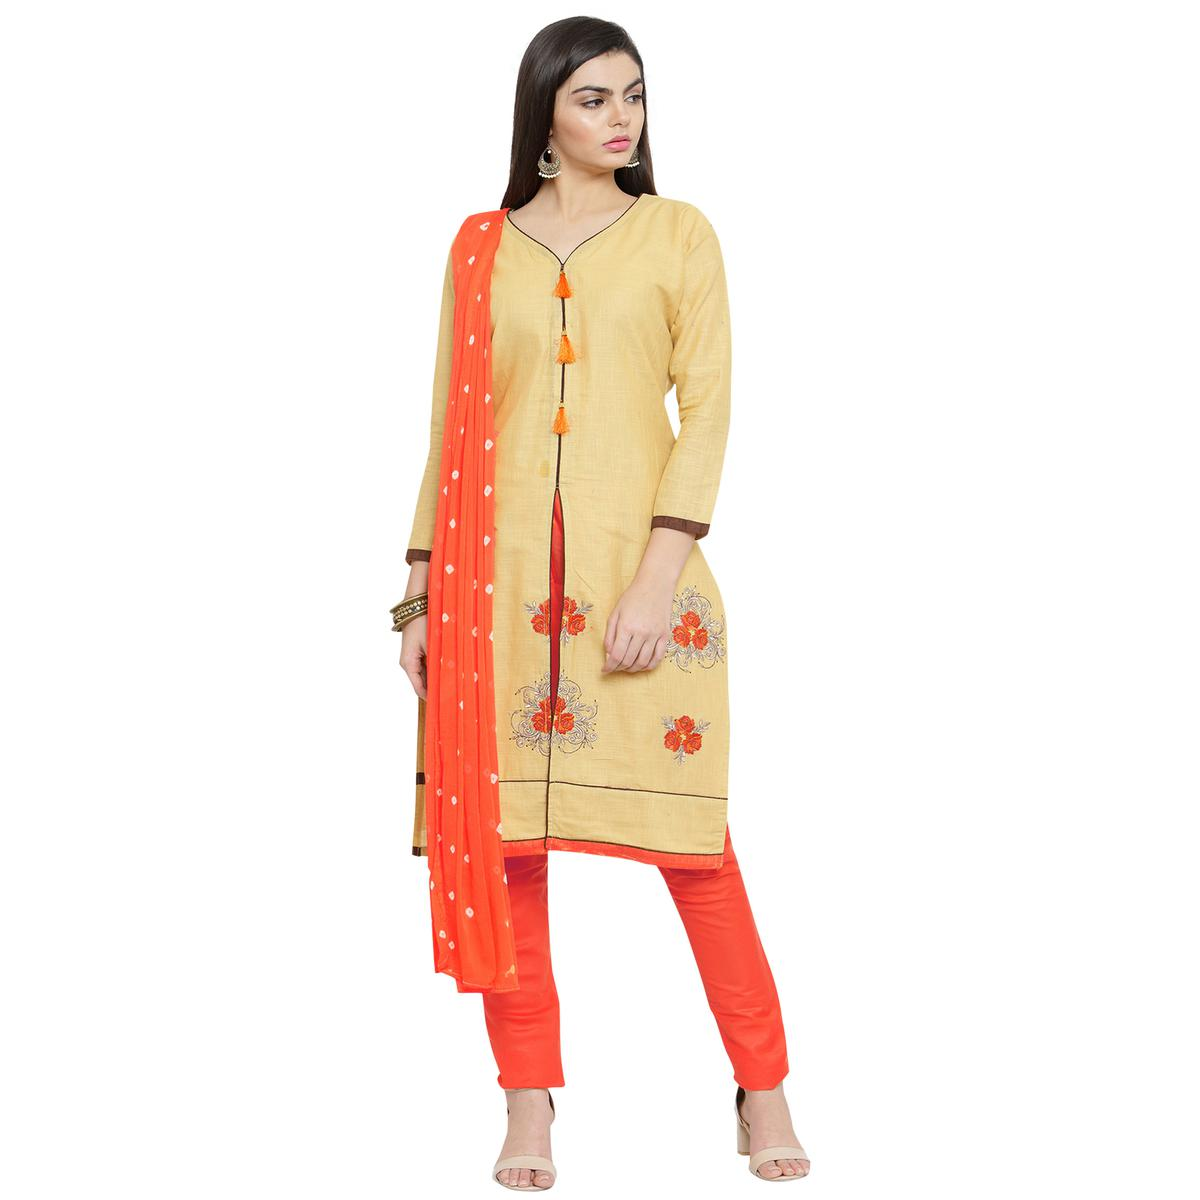 Pleasant Yellow Colored Casual Embroidered Cotton Dress Material